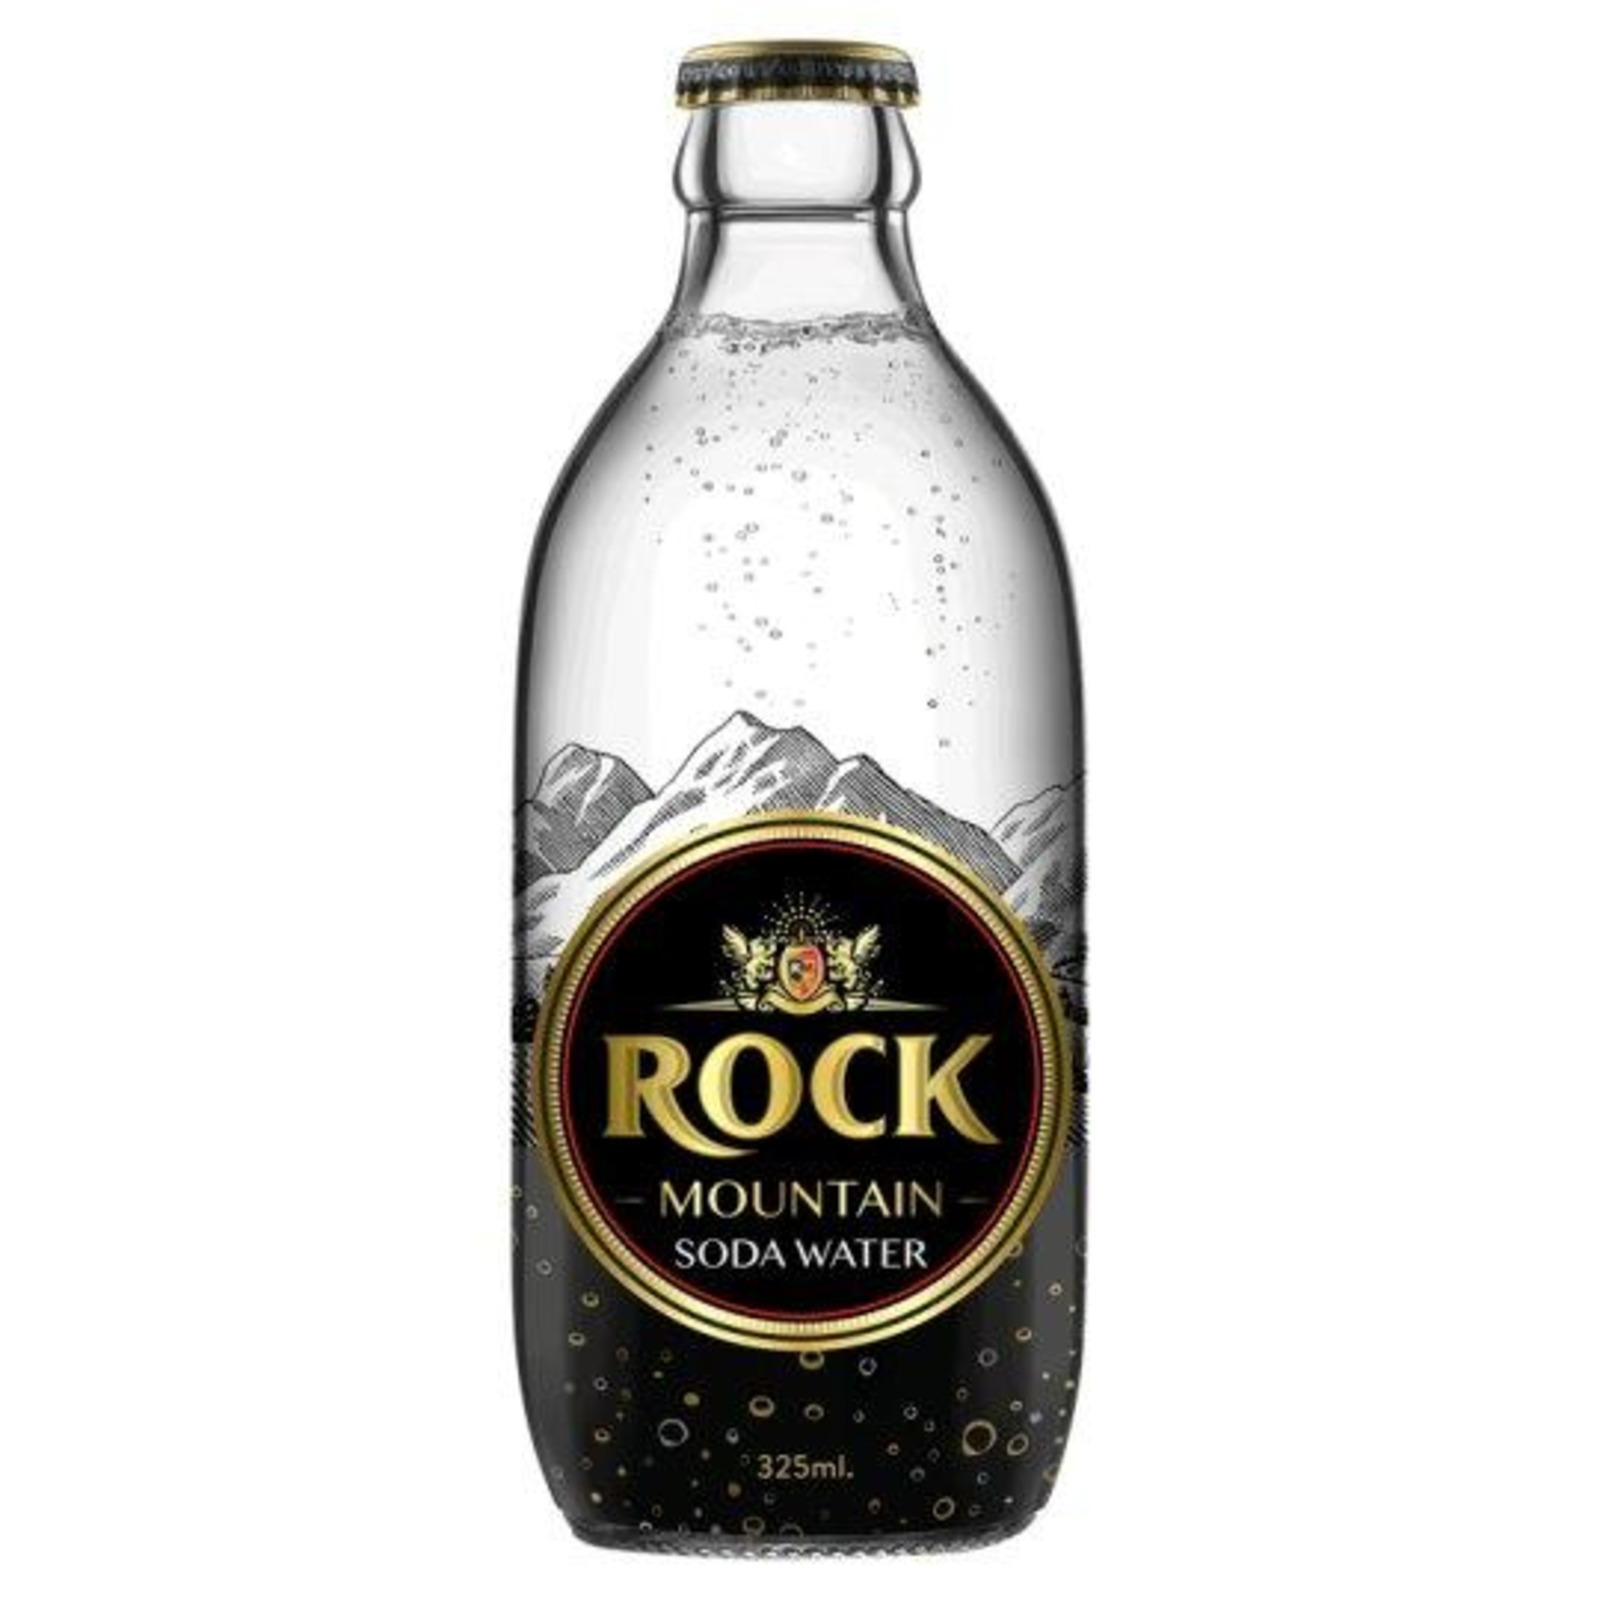 Rock Mountain Soda Water Glass Bottles x 24 bottles